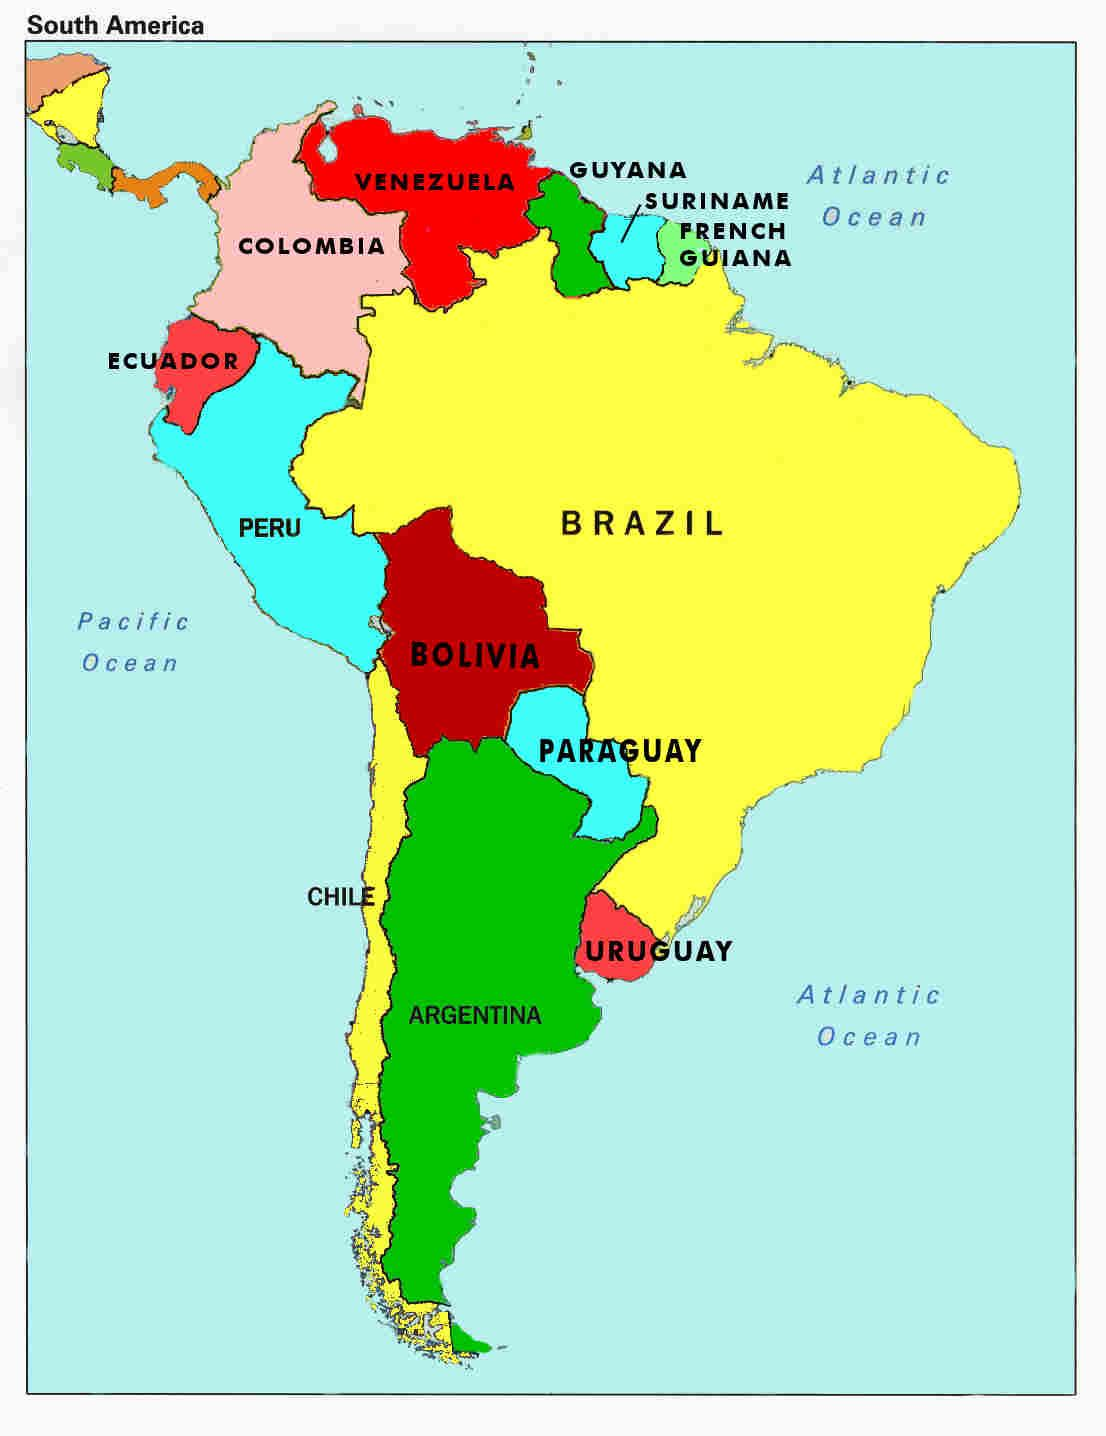 Countries In South America Map map of south america countries and capitals | Map of South America